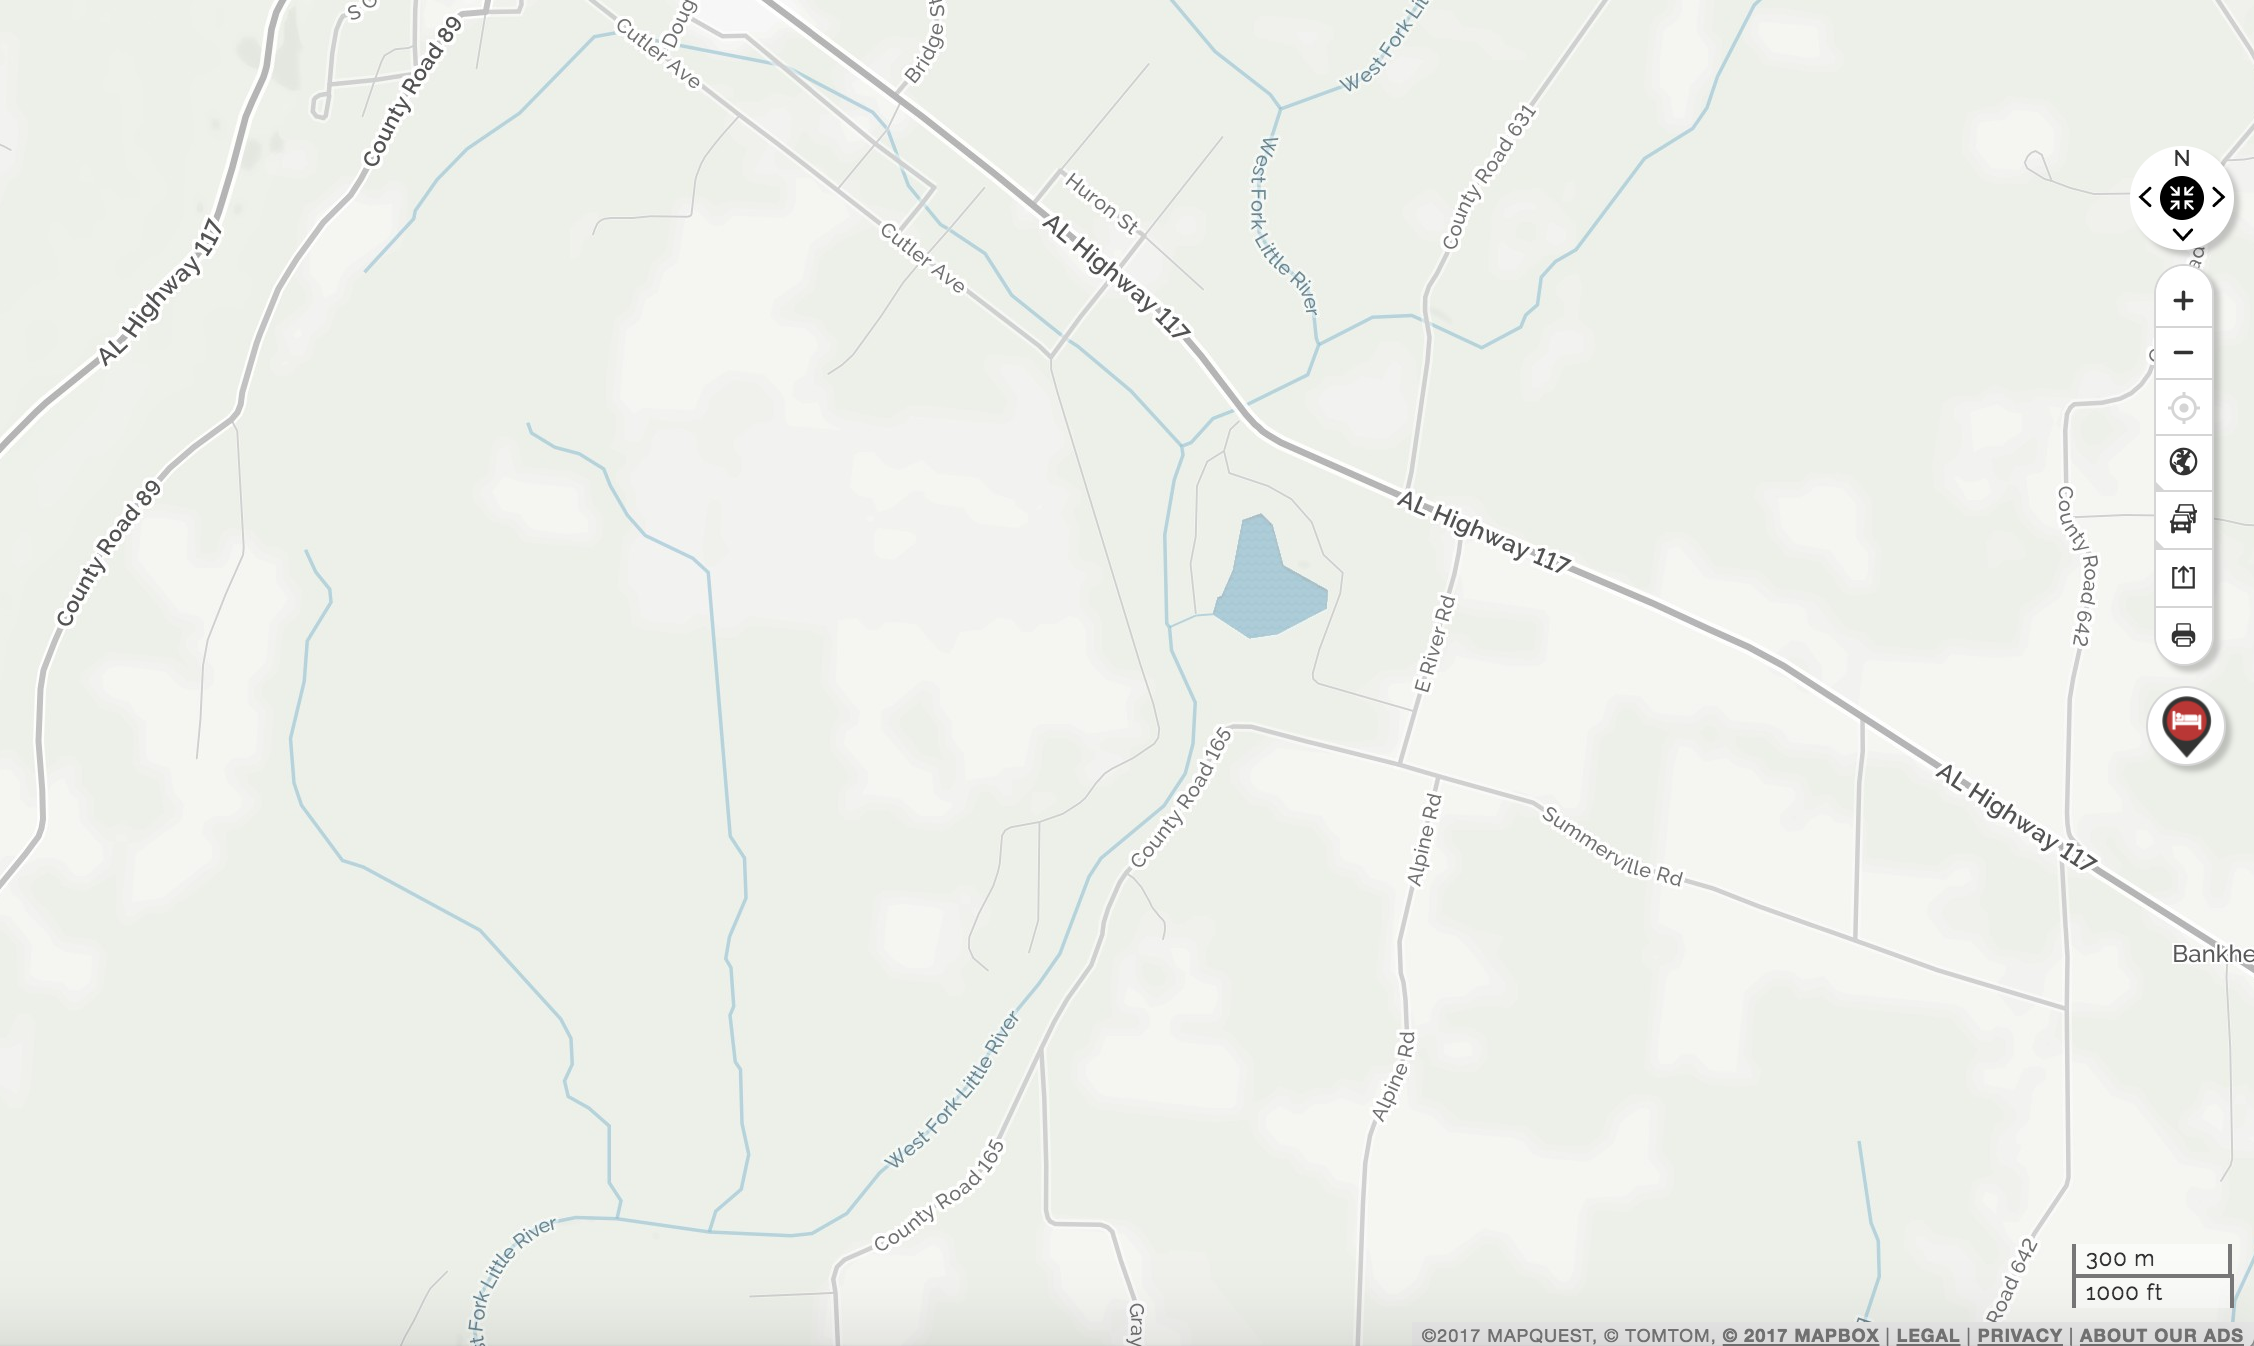 Mentone, Alabama, on MapQuest Maps